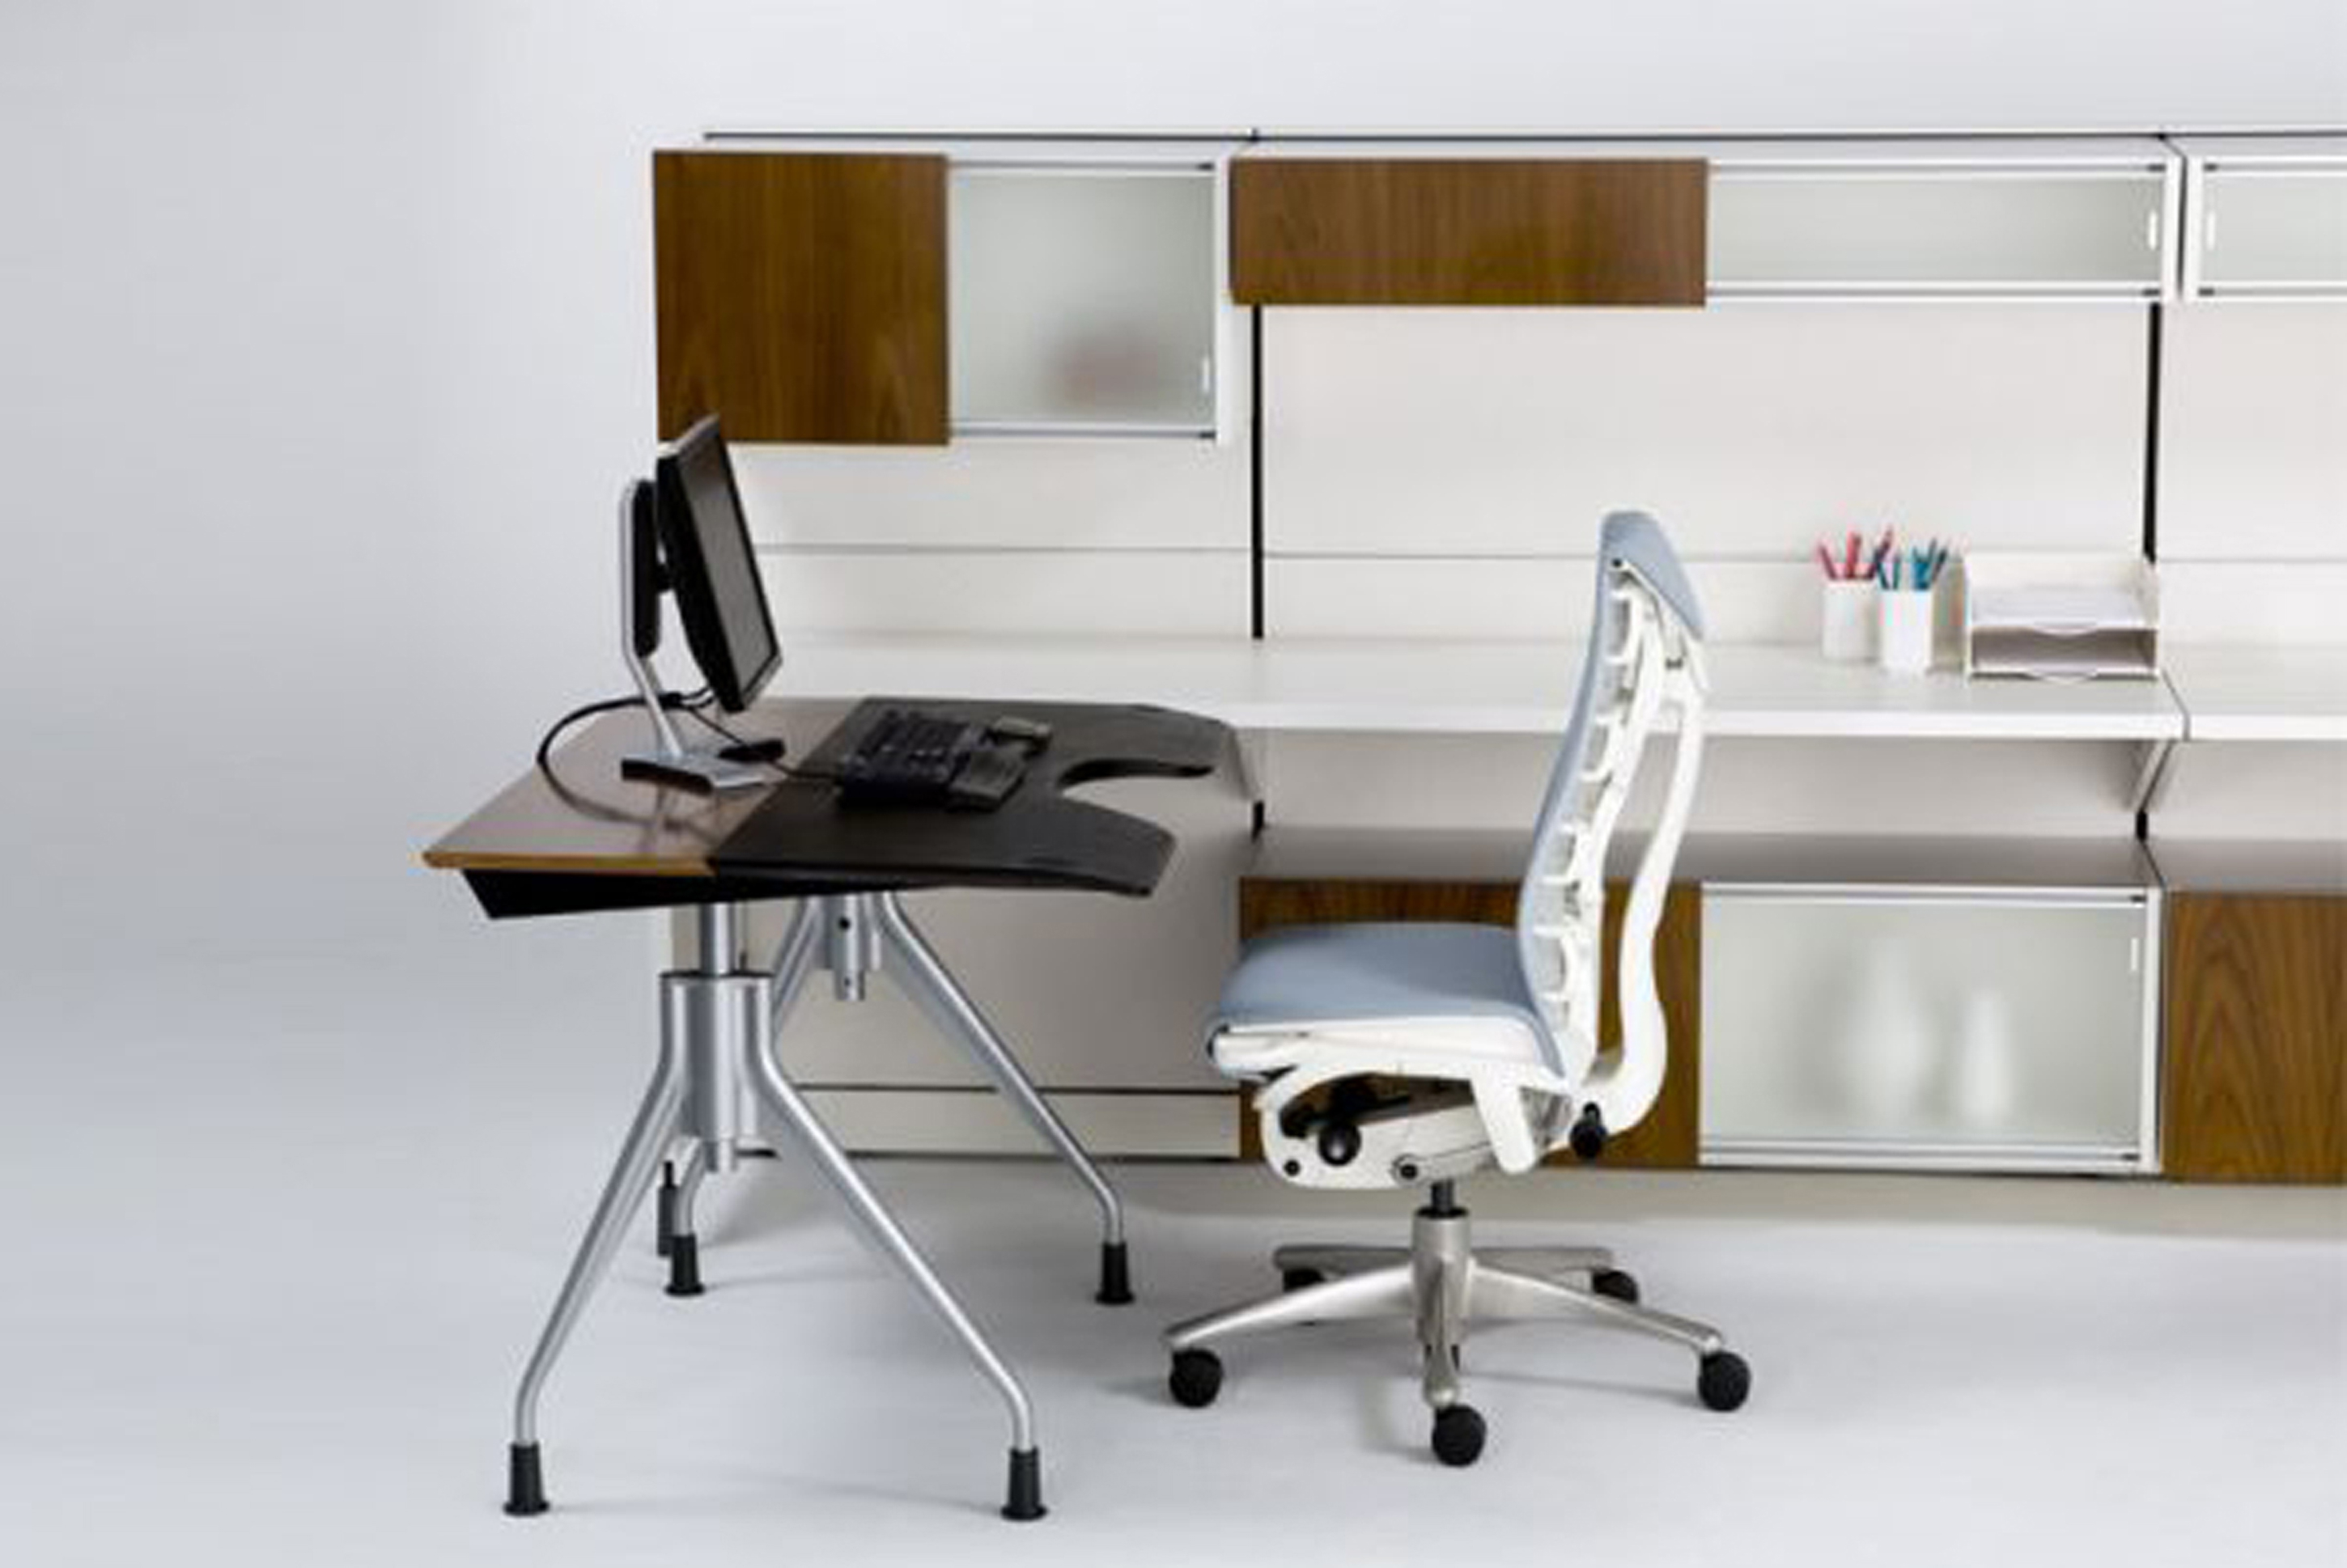 Cozy Modern Office Furniture Design Idea With Brown Black Table With Silver Base White Chair And Brown Cabinet Alluring Modern Office Furniture Design Ideas (View 29 of 30)